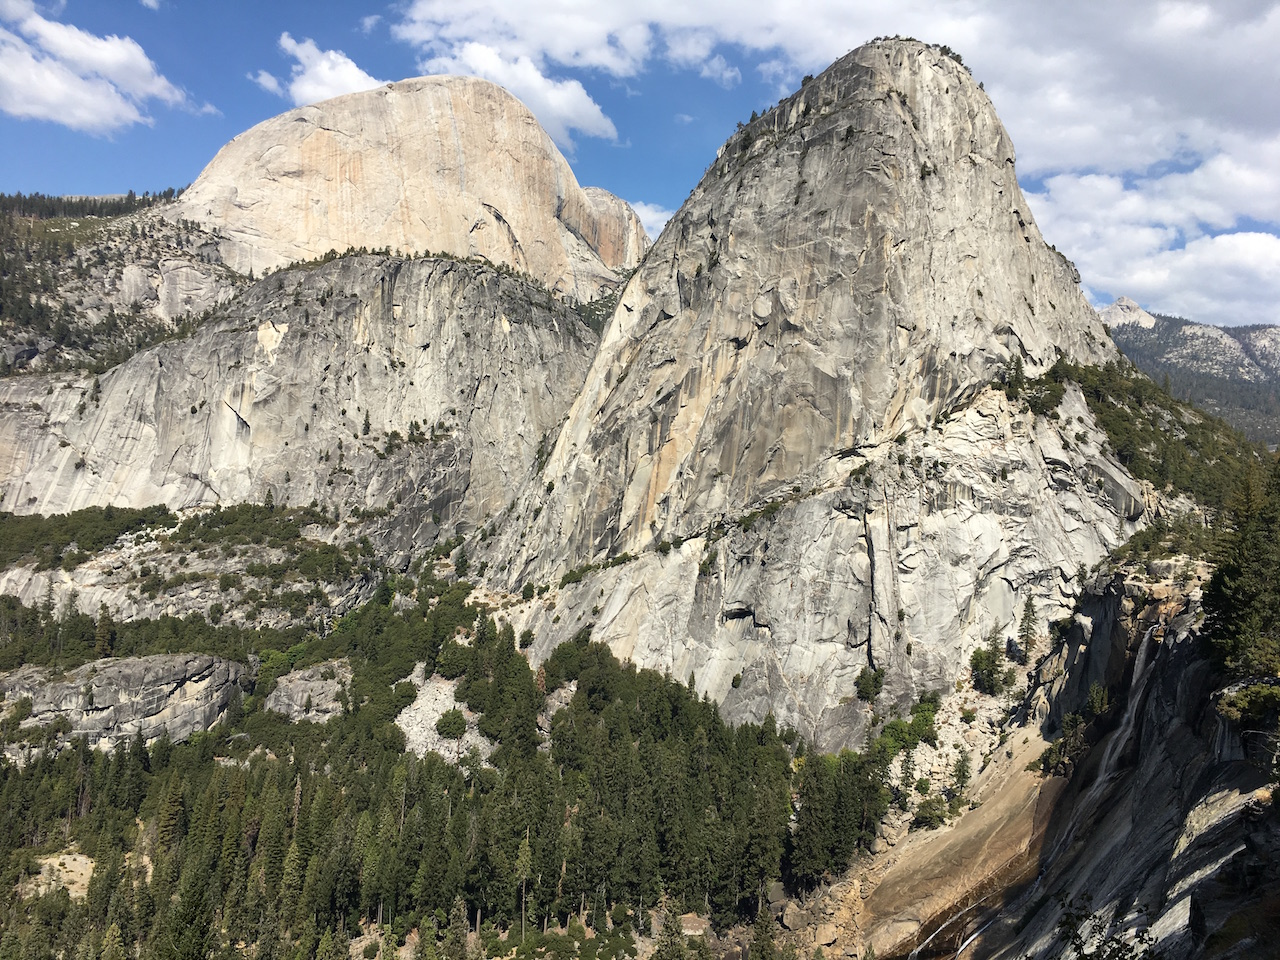 Nevada Fall and Liberty Cap in Yosemite